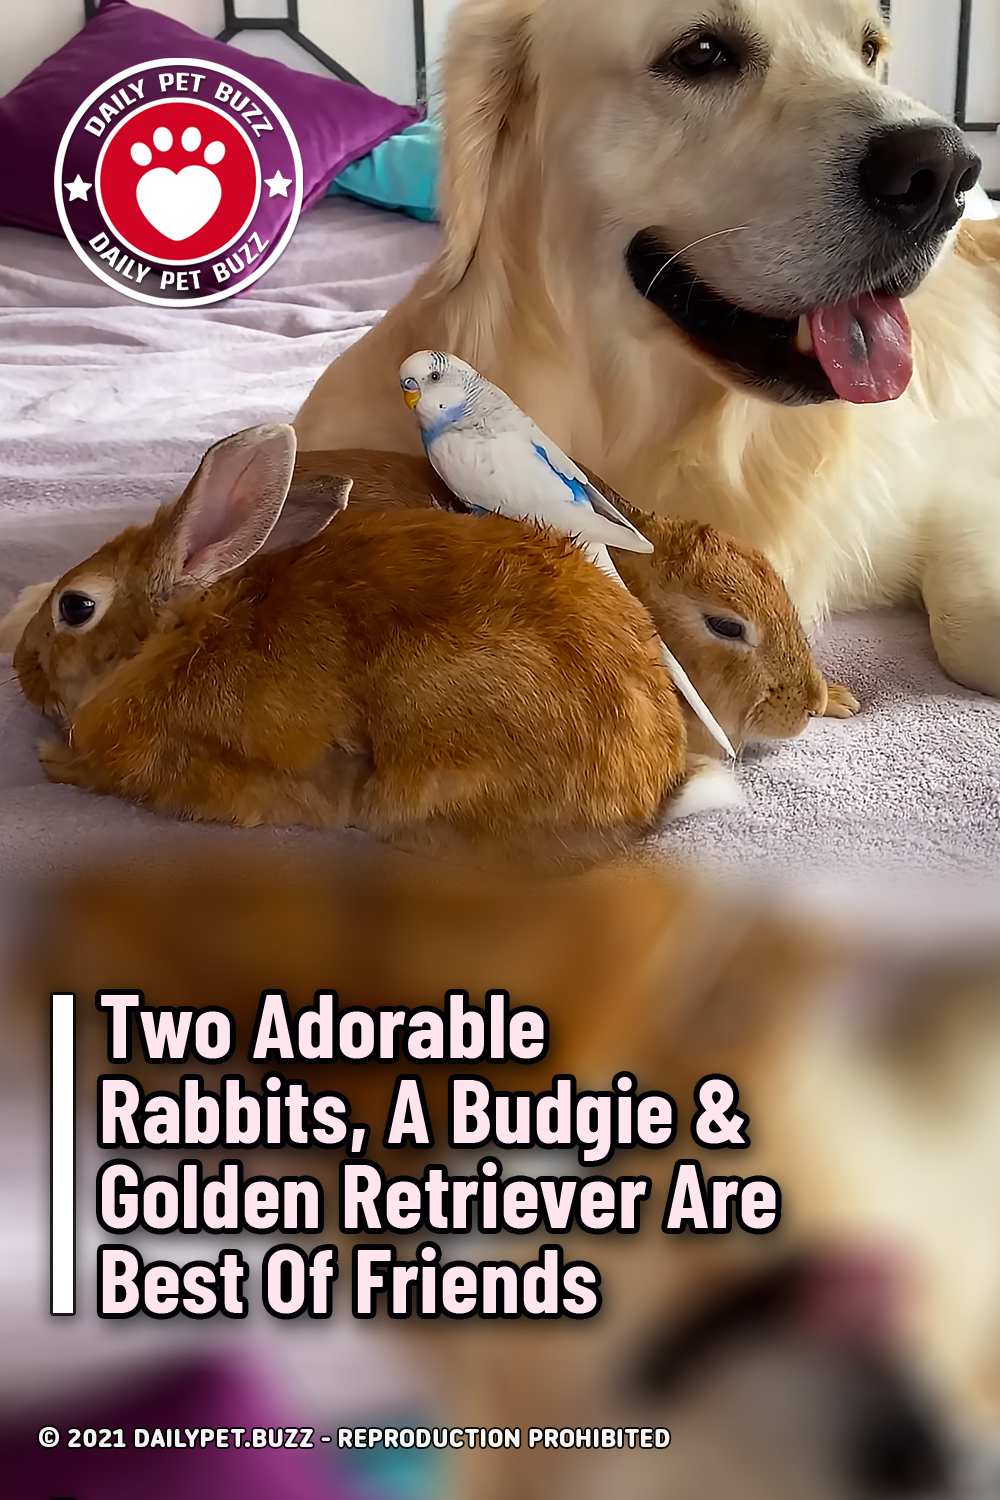 Two Adorable Rabbits, A Budgie & Golden Retriever Are Best Of Friends